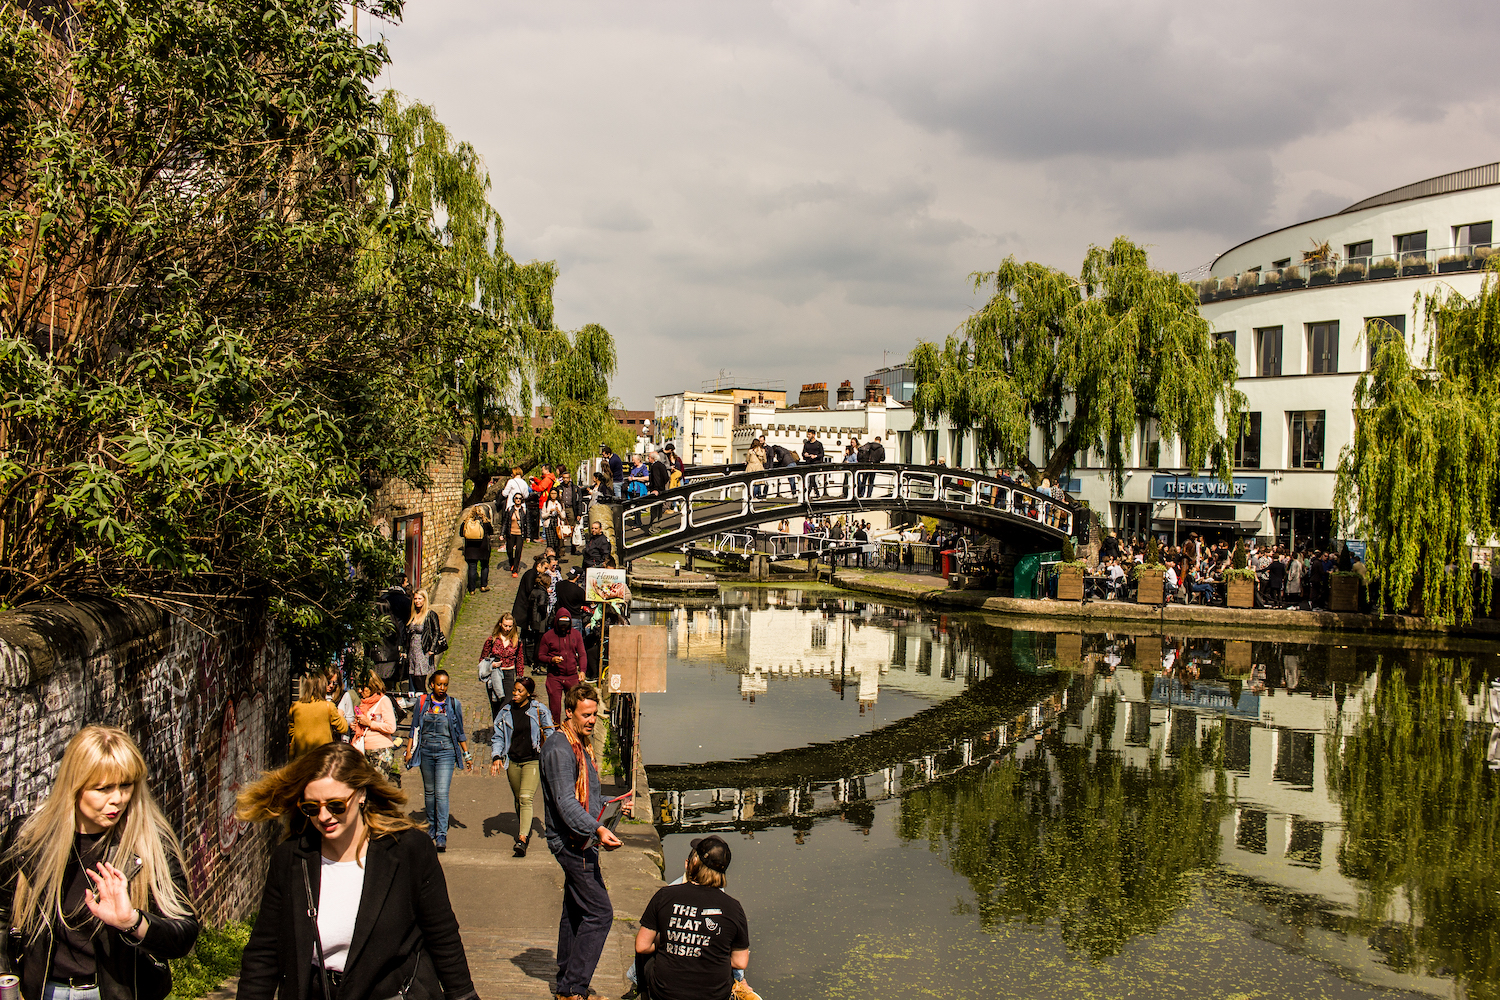 Professional Photography Landscape Of Camden Town Canal Riverside With People Walking Green Trees And Buildings